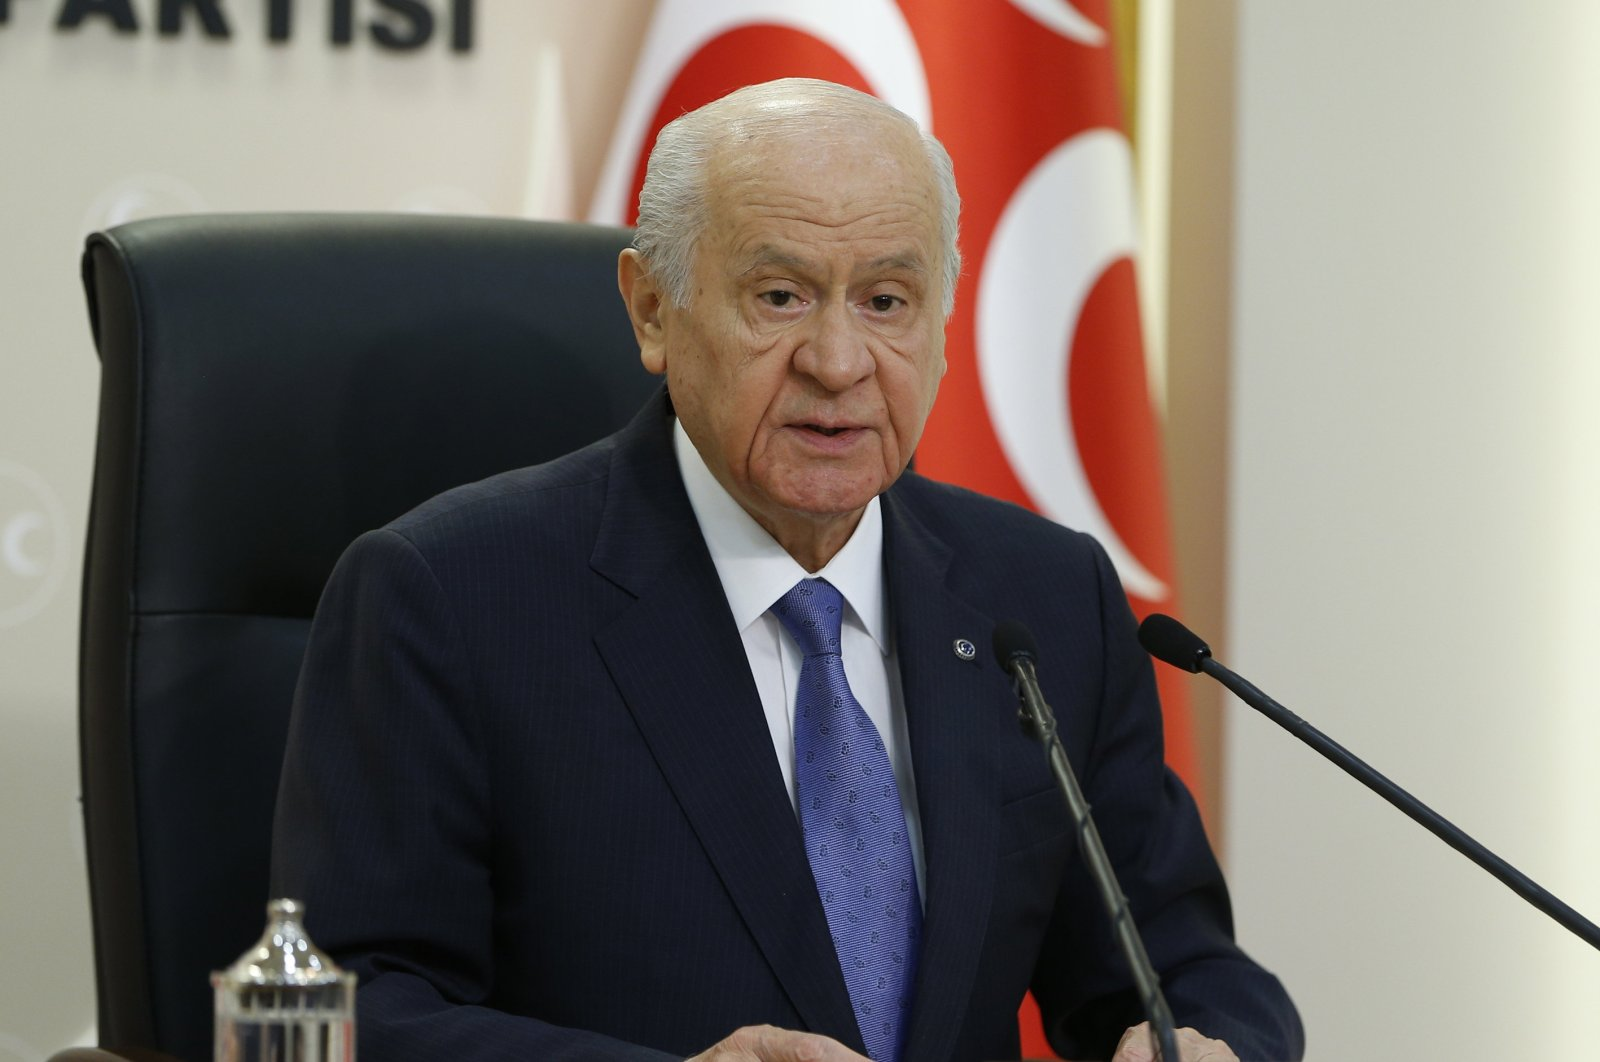 Nationalist Movement Party (MHP) Chairman Devlet Bahçeli speaks during a news conference at the party's headquarters, Ankara, Turkey, Aug. 8, 2020. (AA Photo)